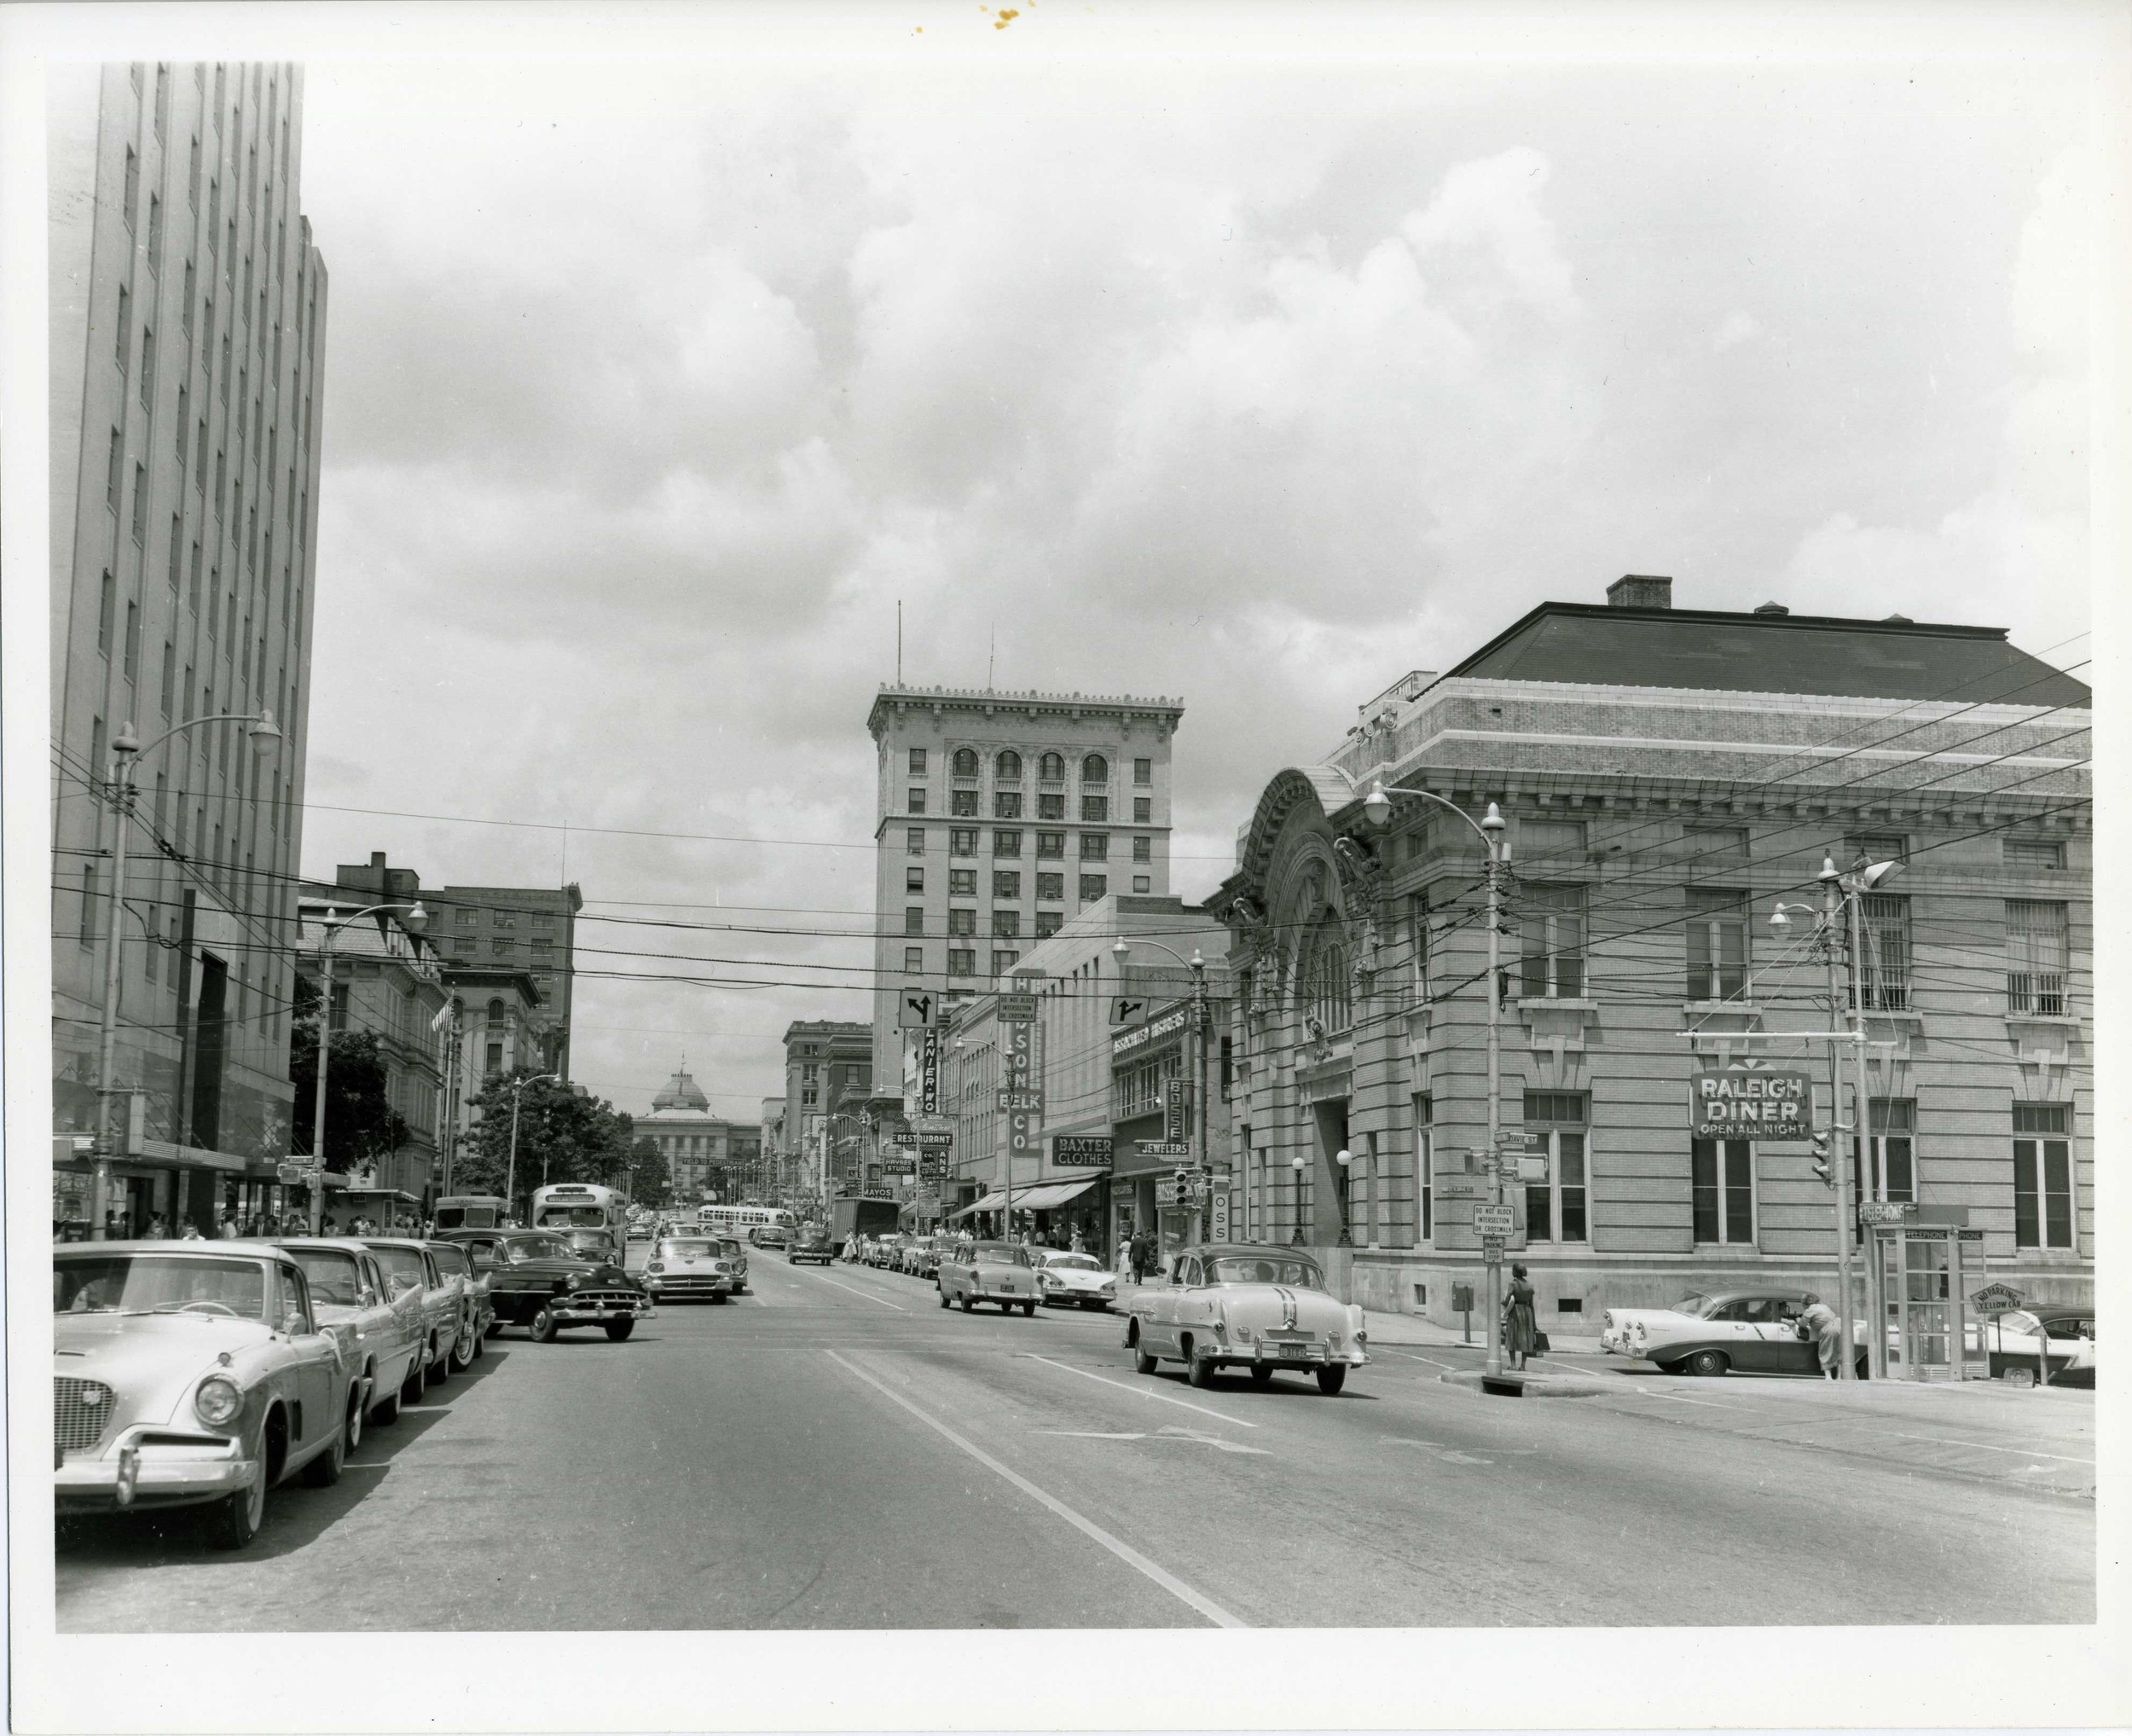 300 block of Fayetteville Street looking north to the State Capitol - Raleigh City Hall on the right. Photo ca. 1955 - Photo by Madlin Futrell.  General Collection, State Archives of North Carolina